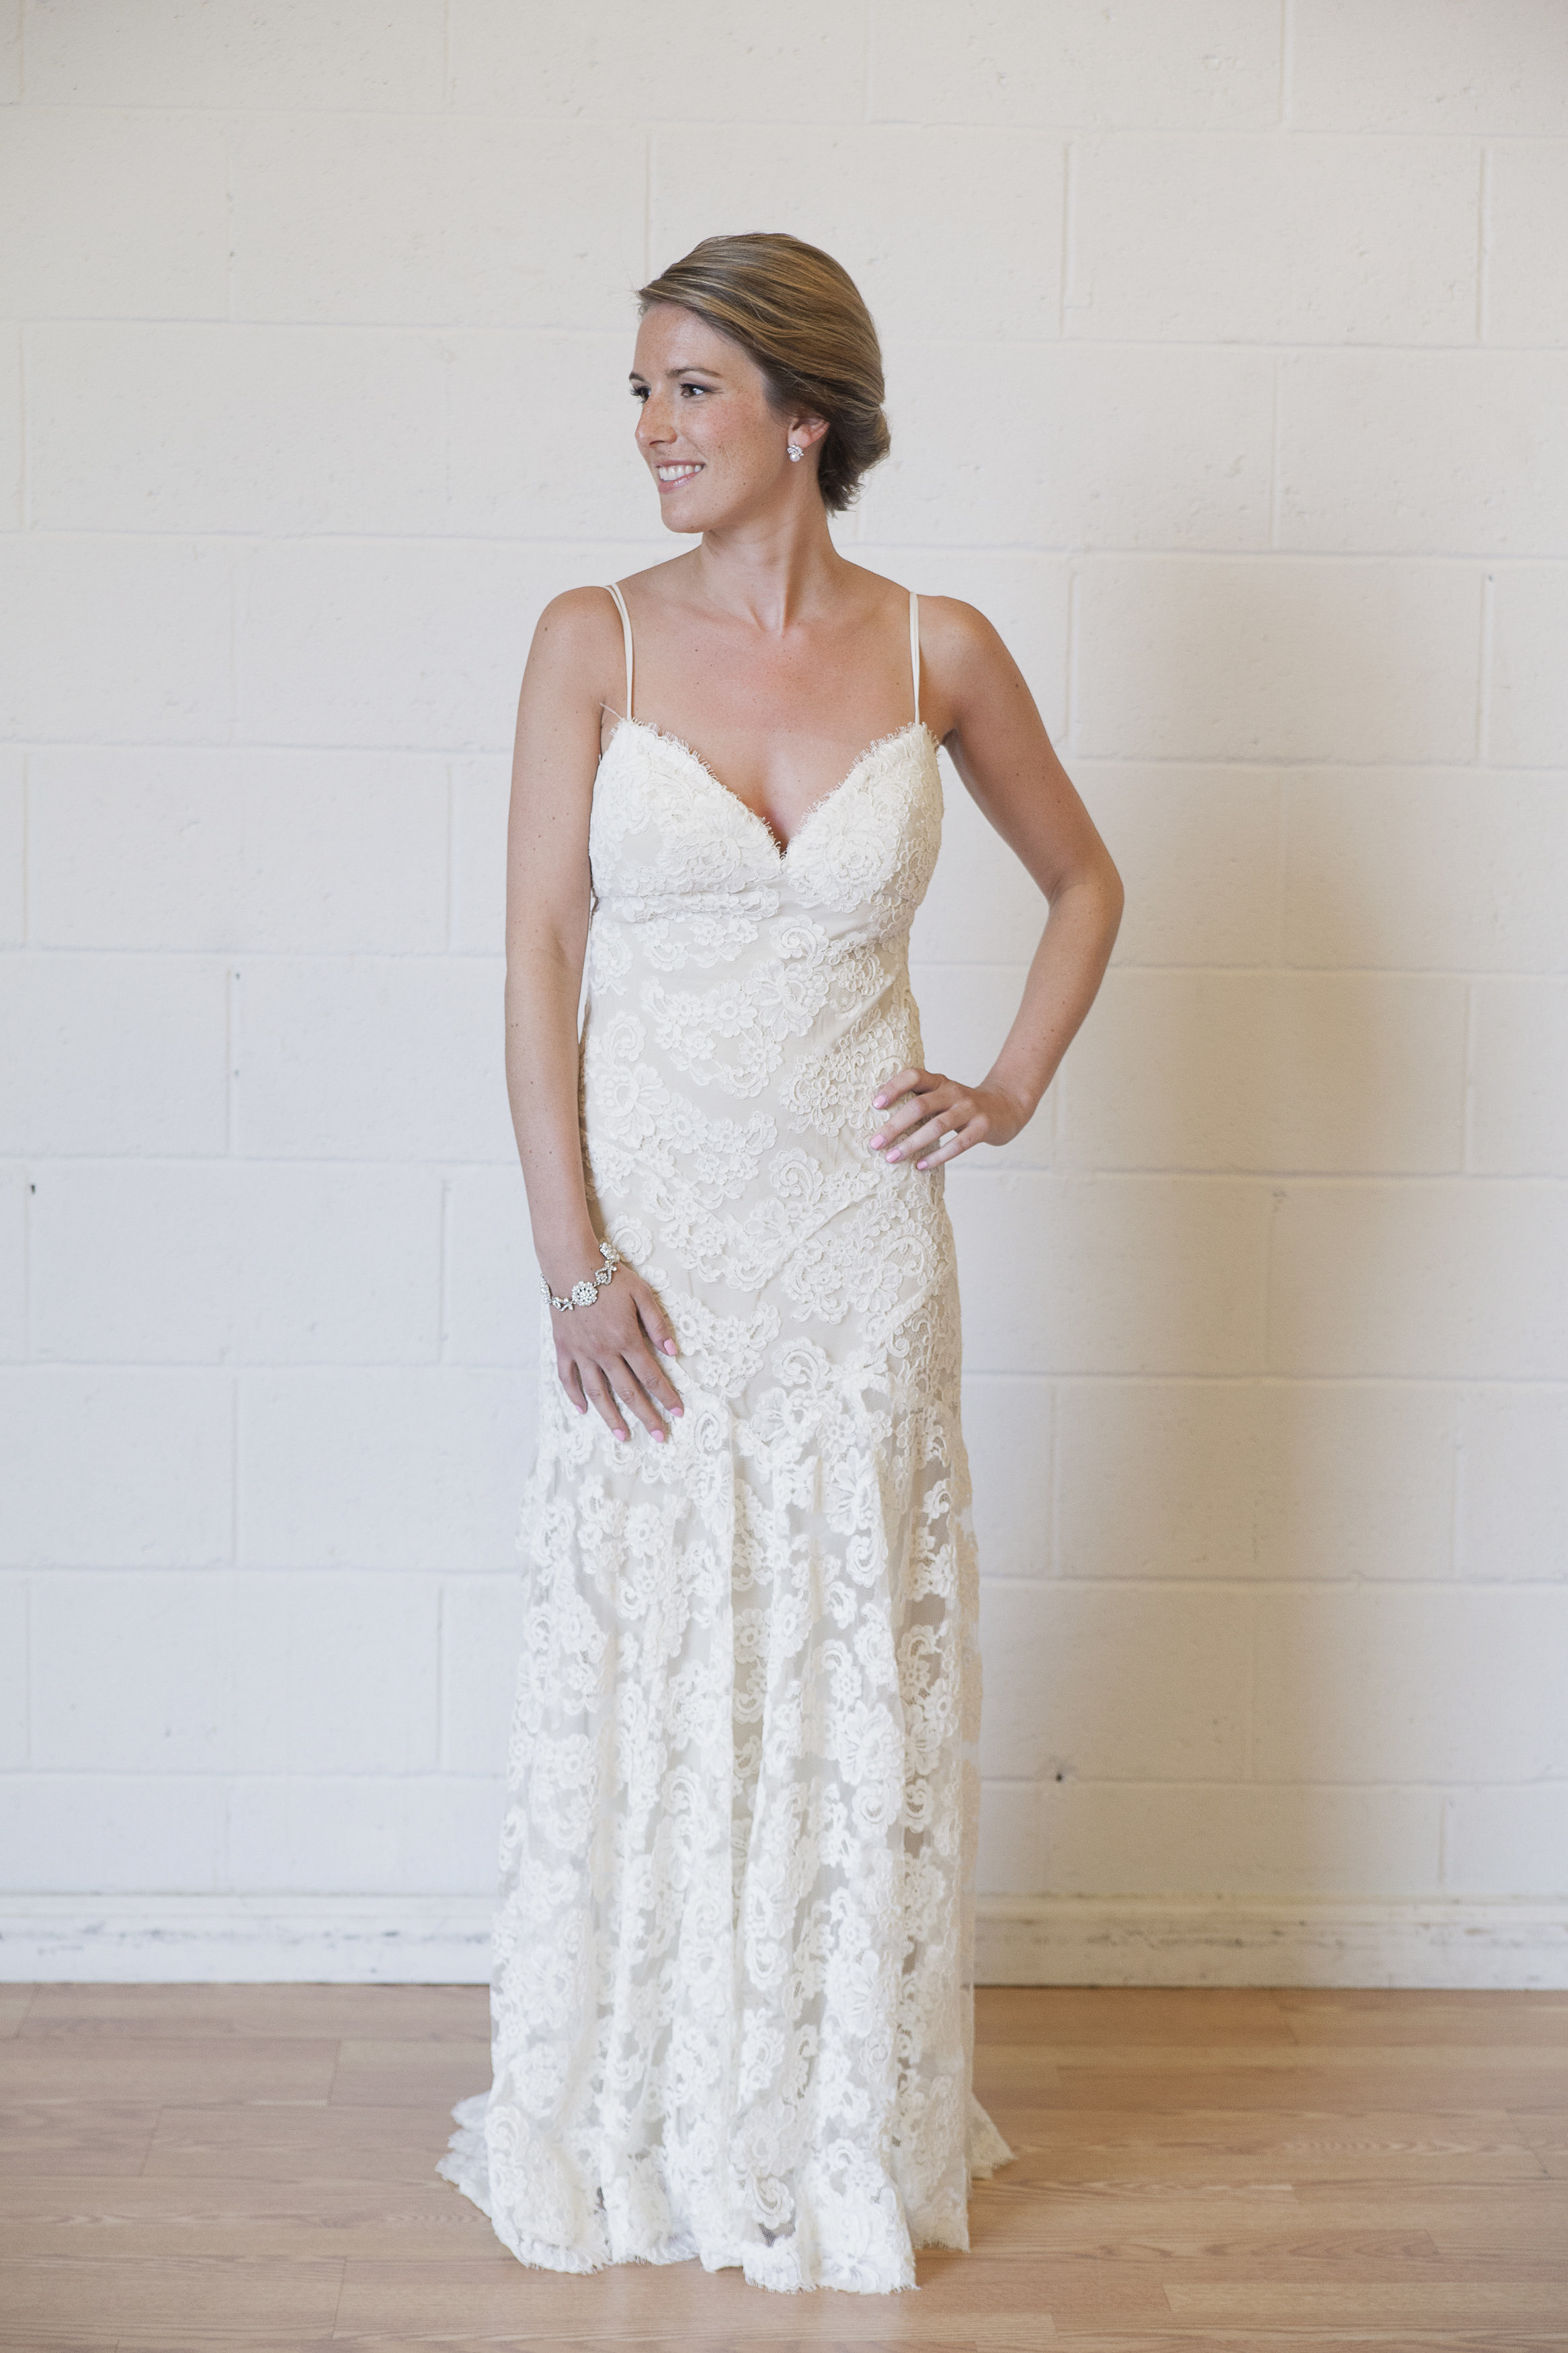 Monique lhuillier size  - $3500 - (30% OFF)